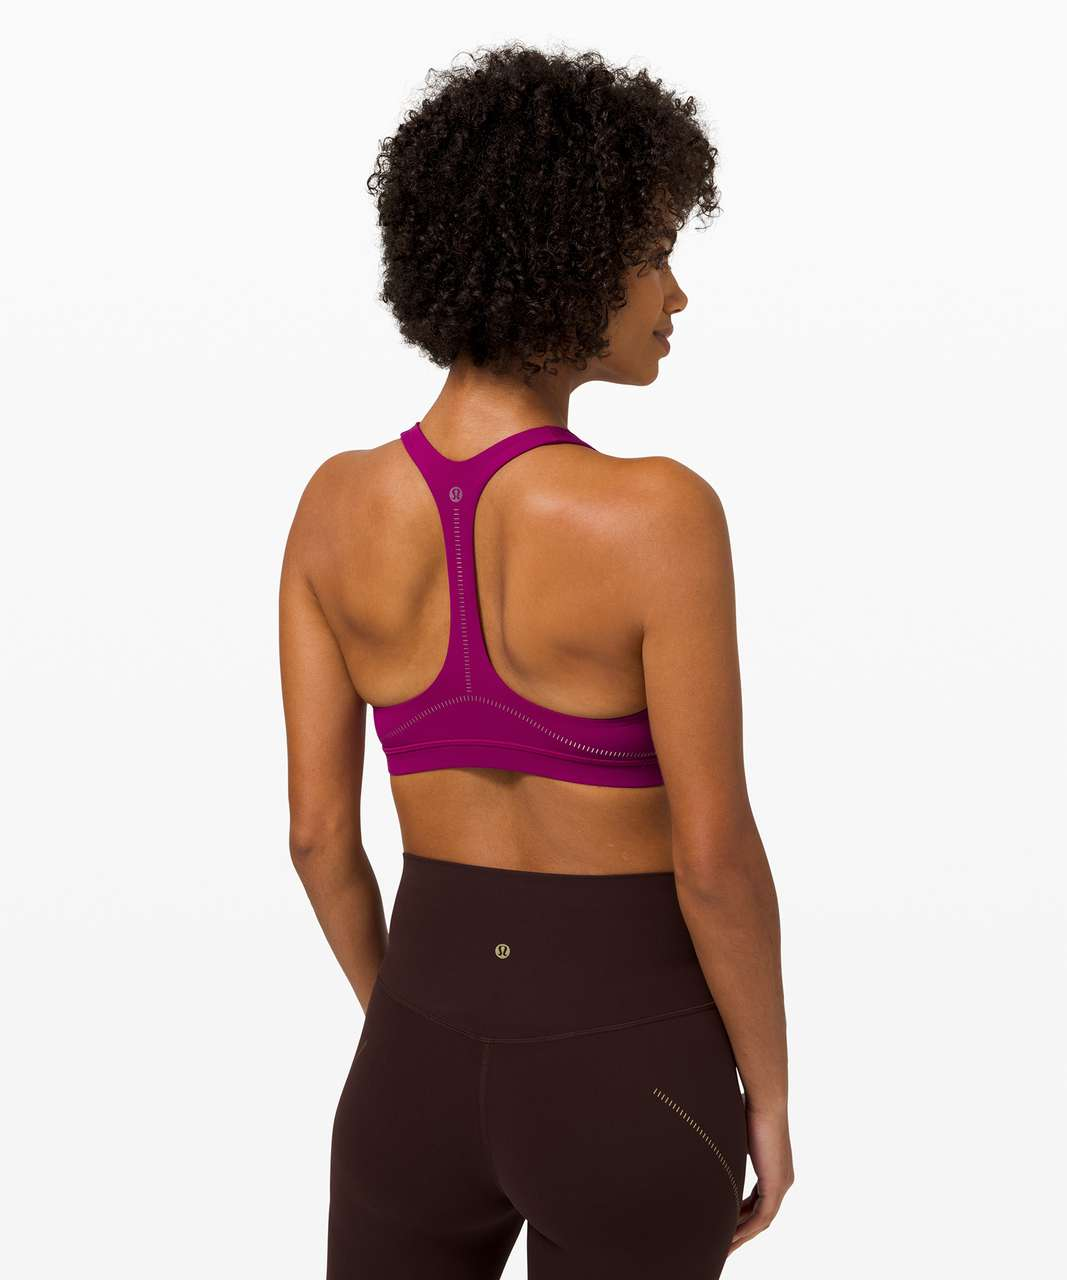 Lululemon Arise Bra *Light Support, C/D Cup - Deep Fuschia